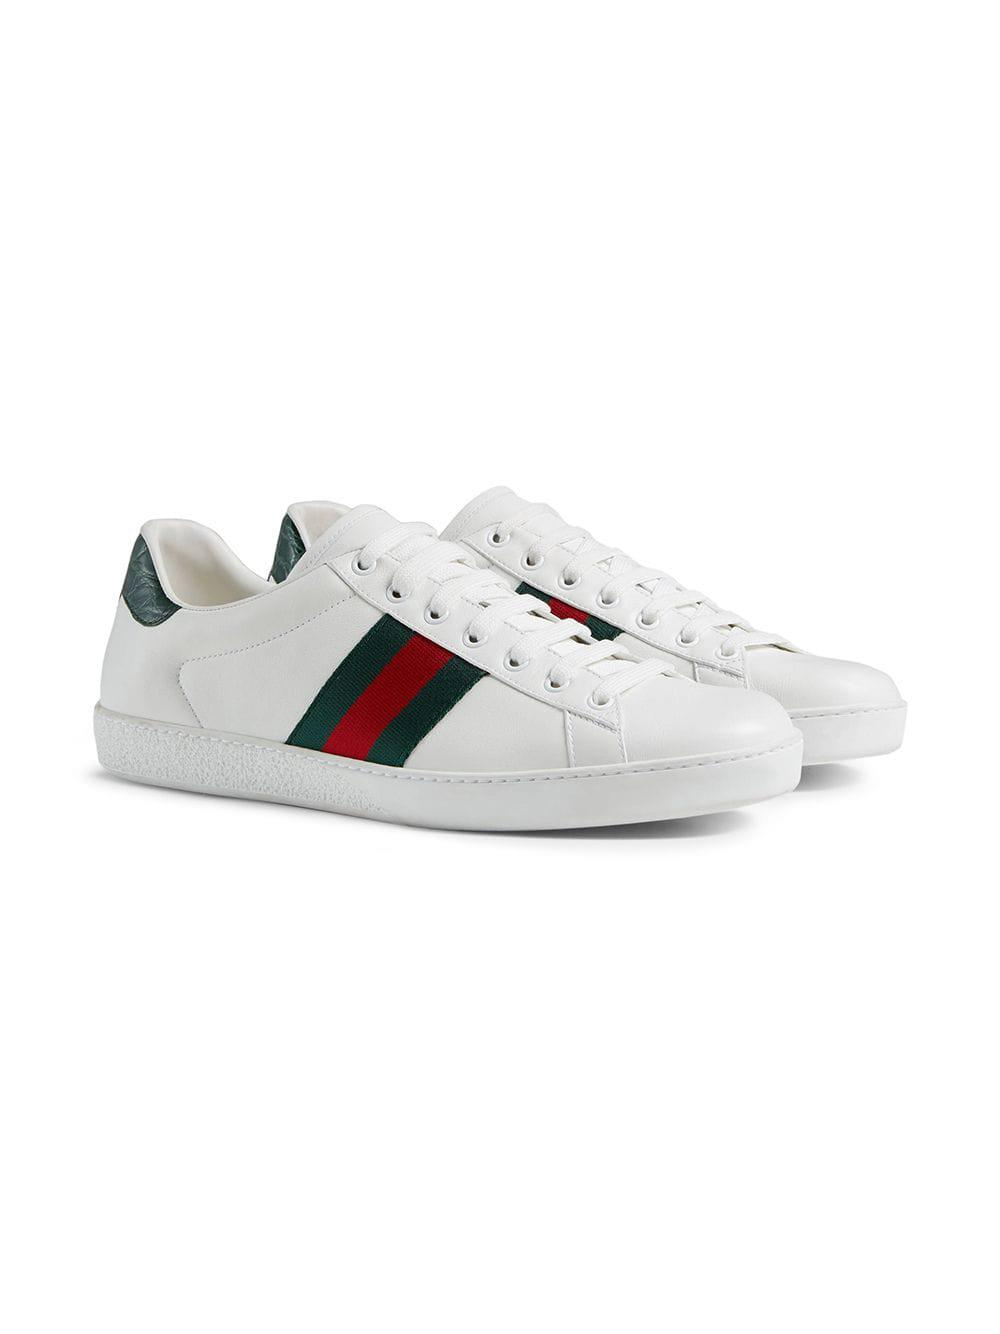 9c7f861fd Gucci Ace Leather Sneakers in White for Men - Save 25% - Lyst